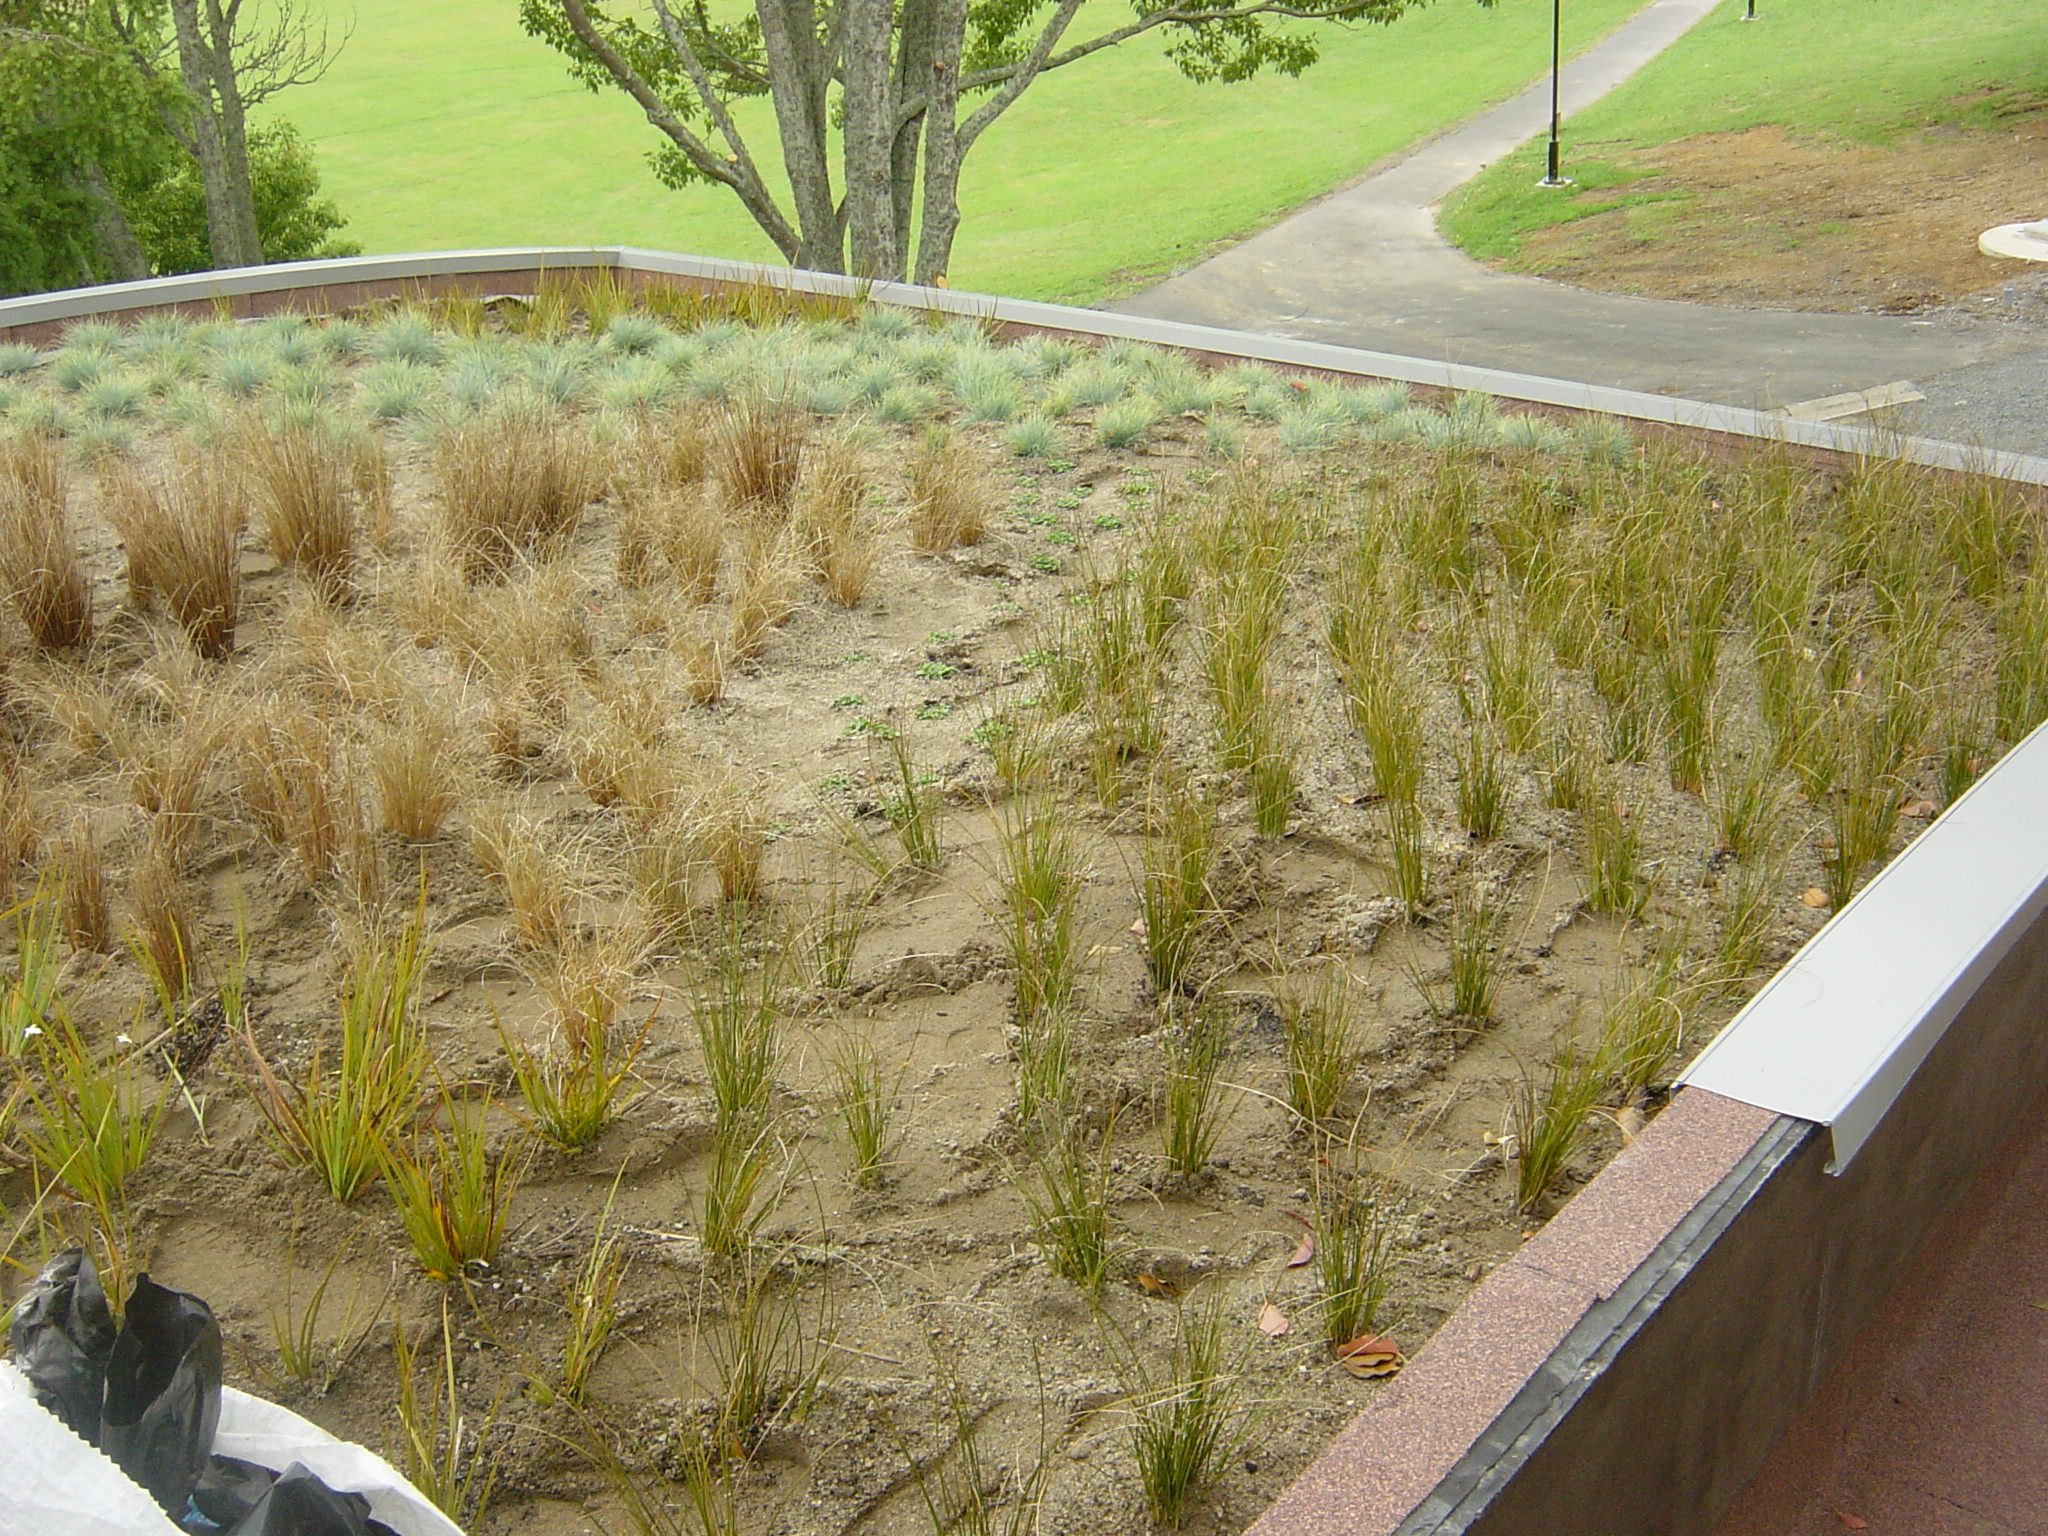 Green roof with new growth